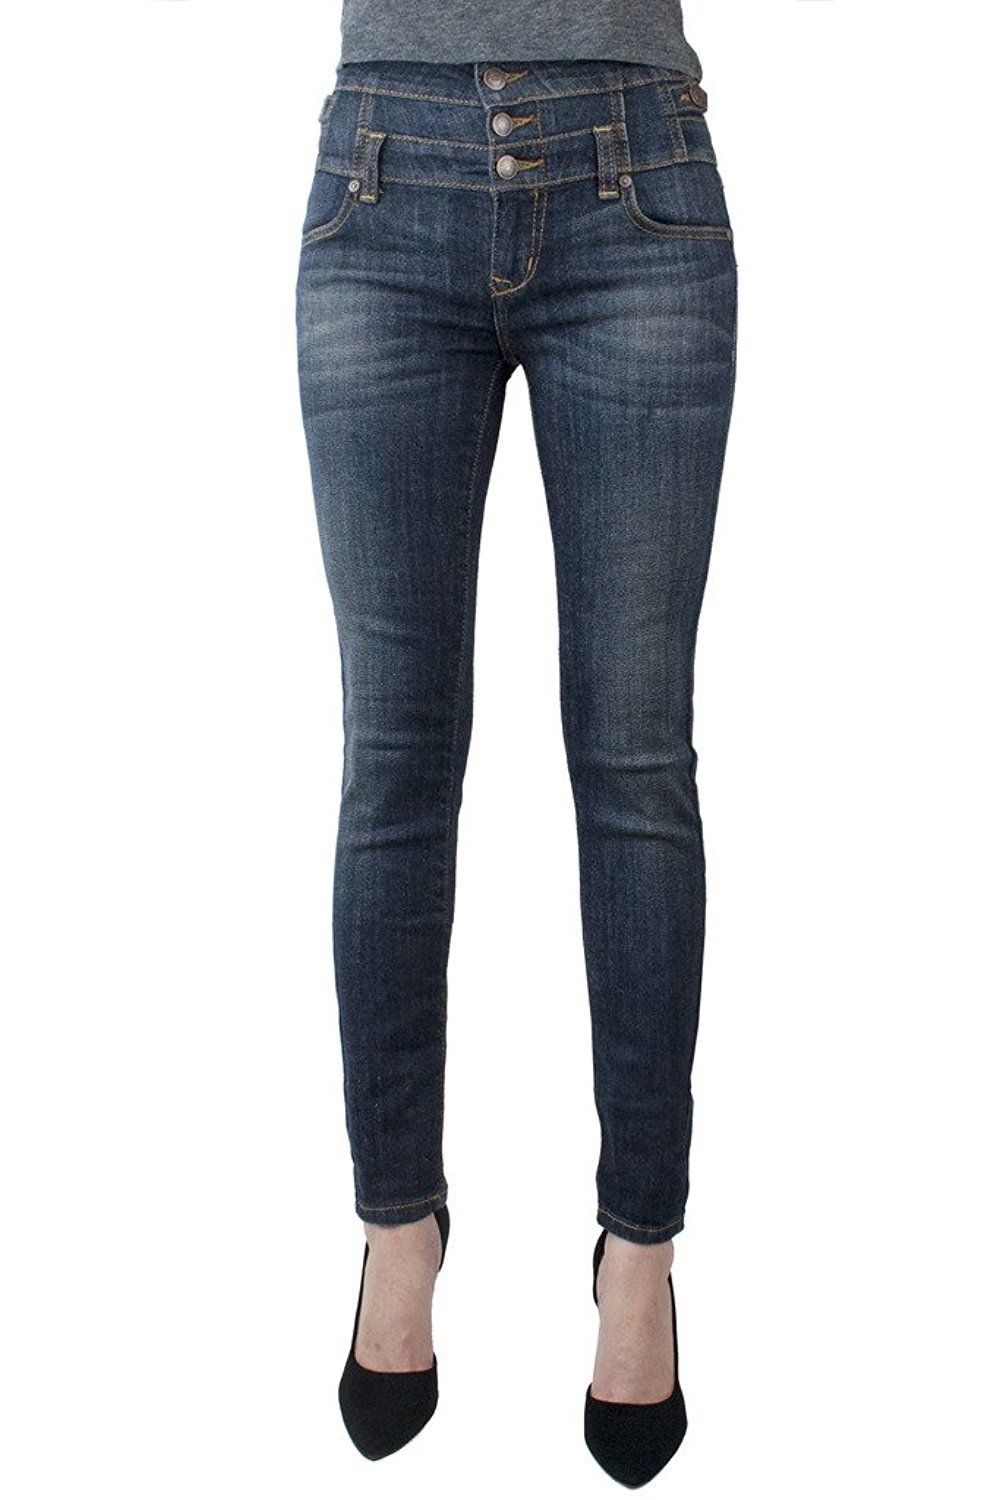 Women's Plus Size Petite Jean, Pull On, Elastic Waist *** Check ...